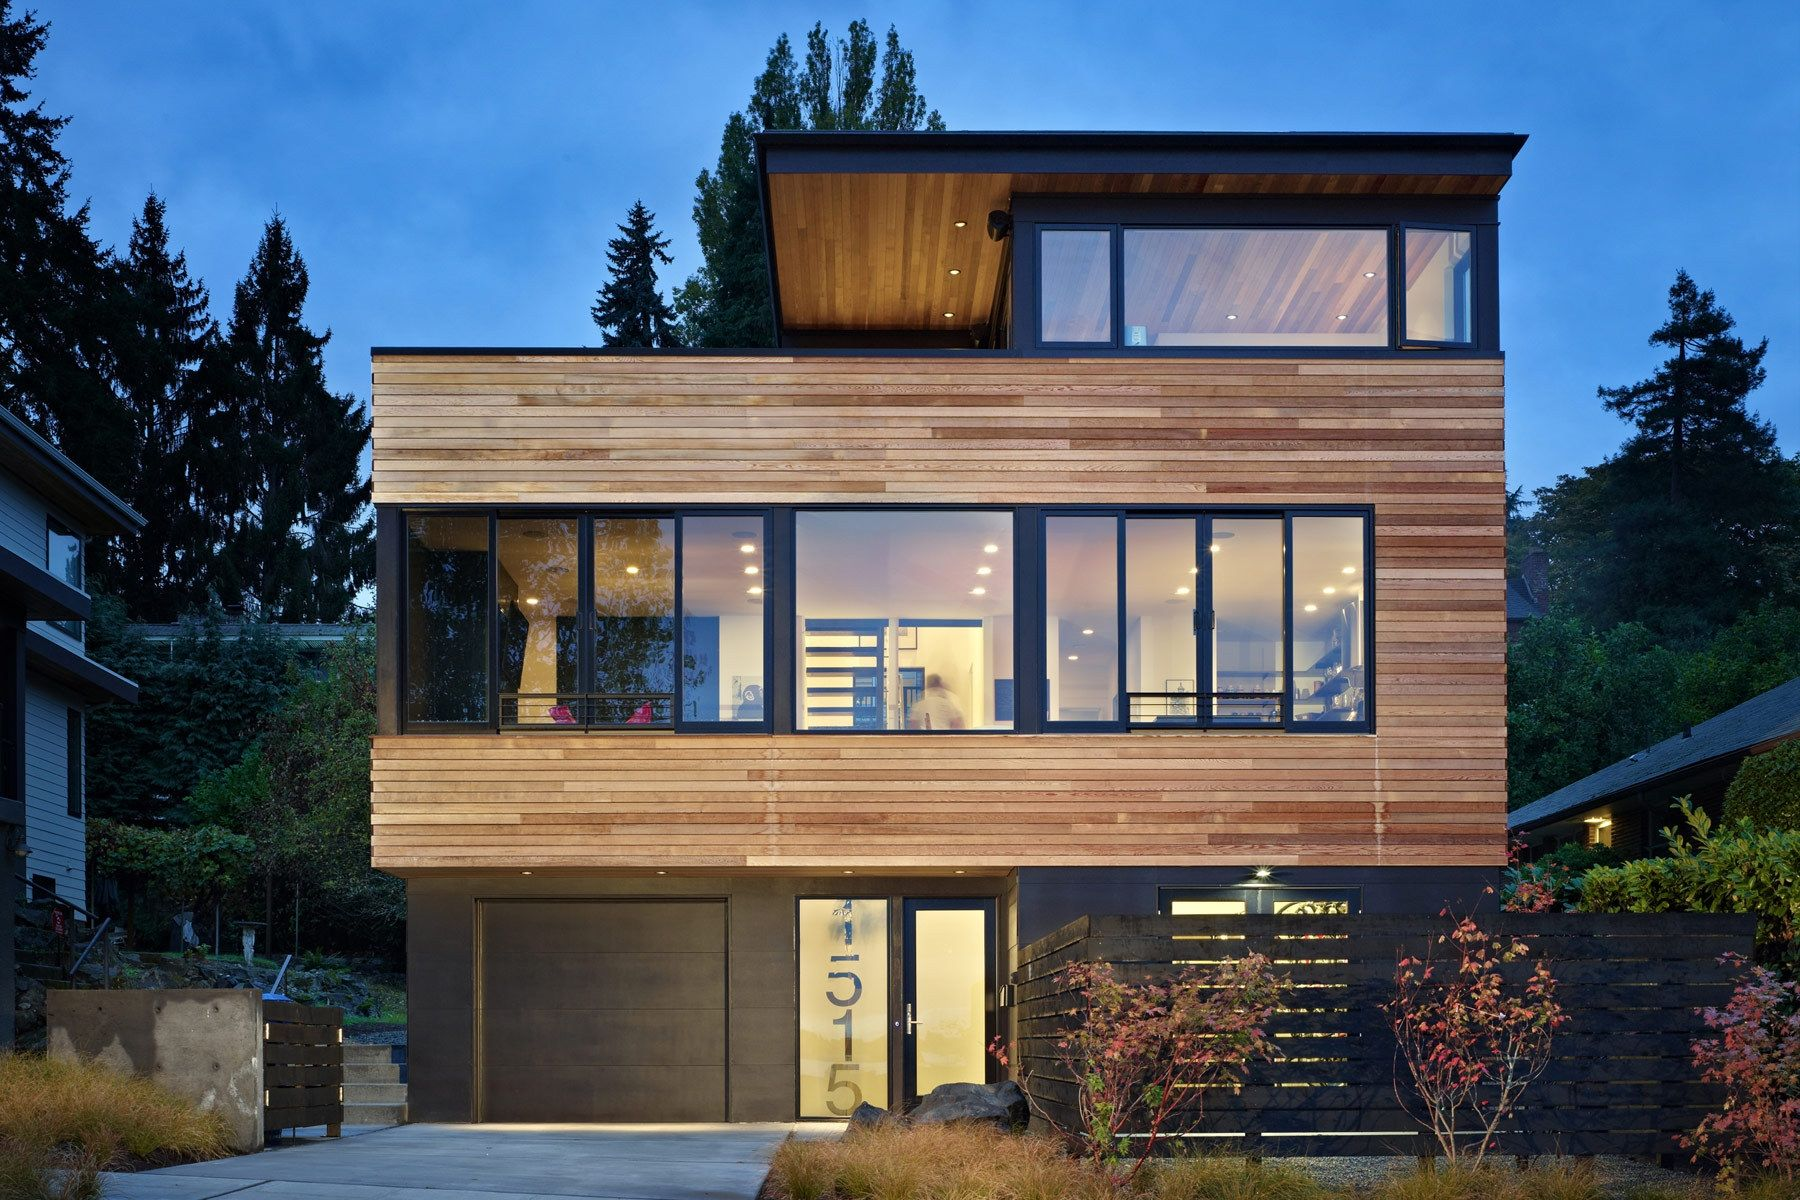 Architecture modern seattle home ranch house designs for Stylish house designs